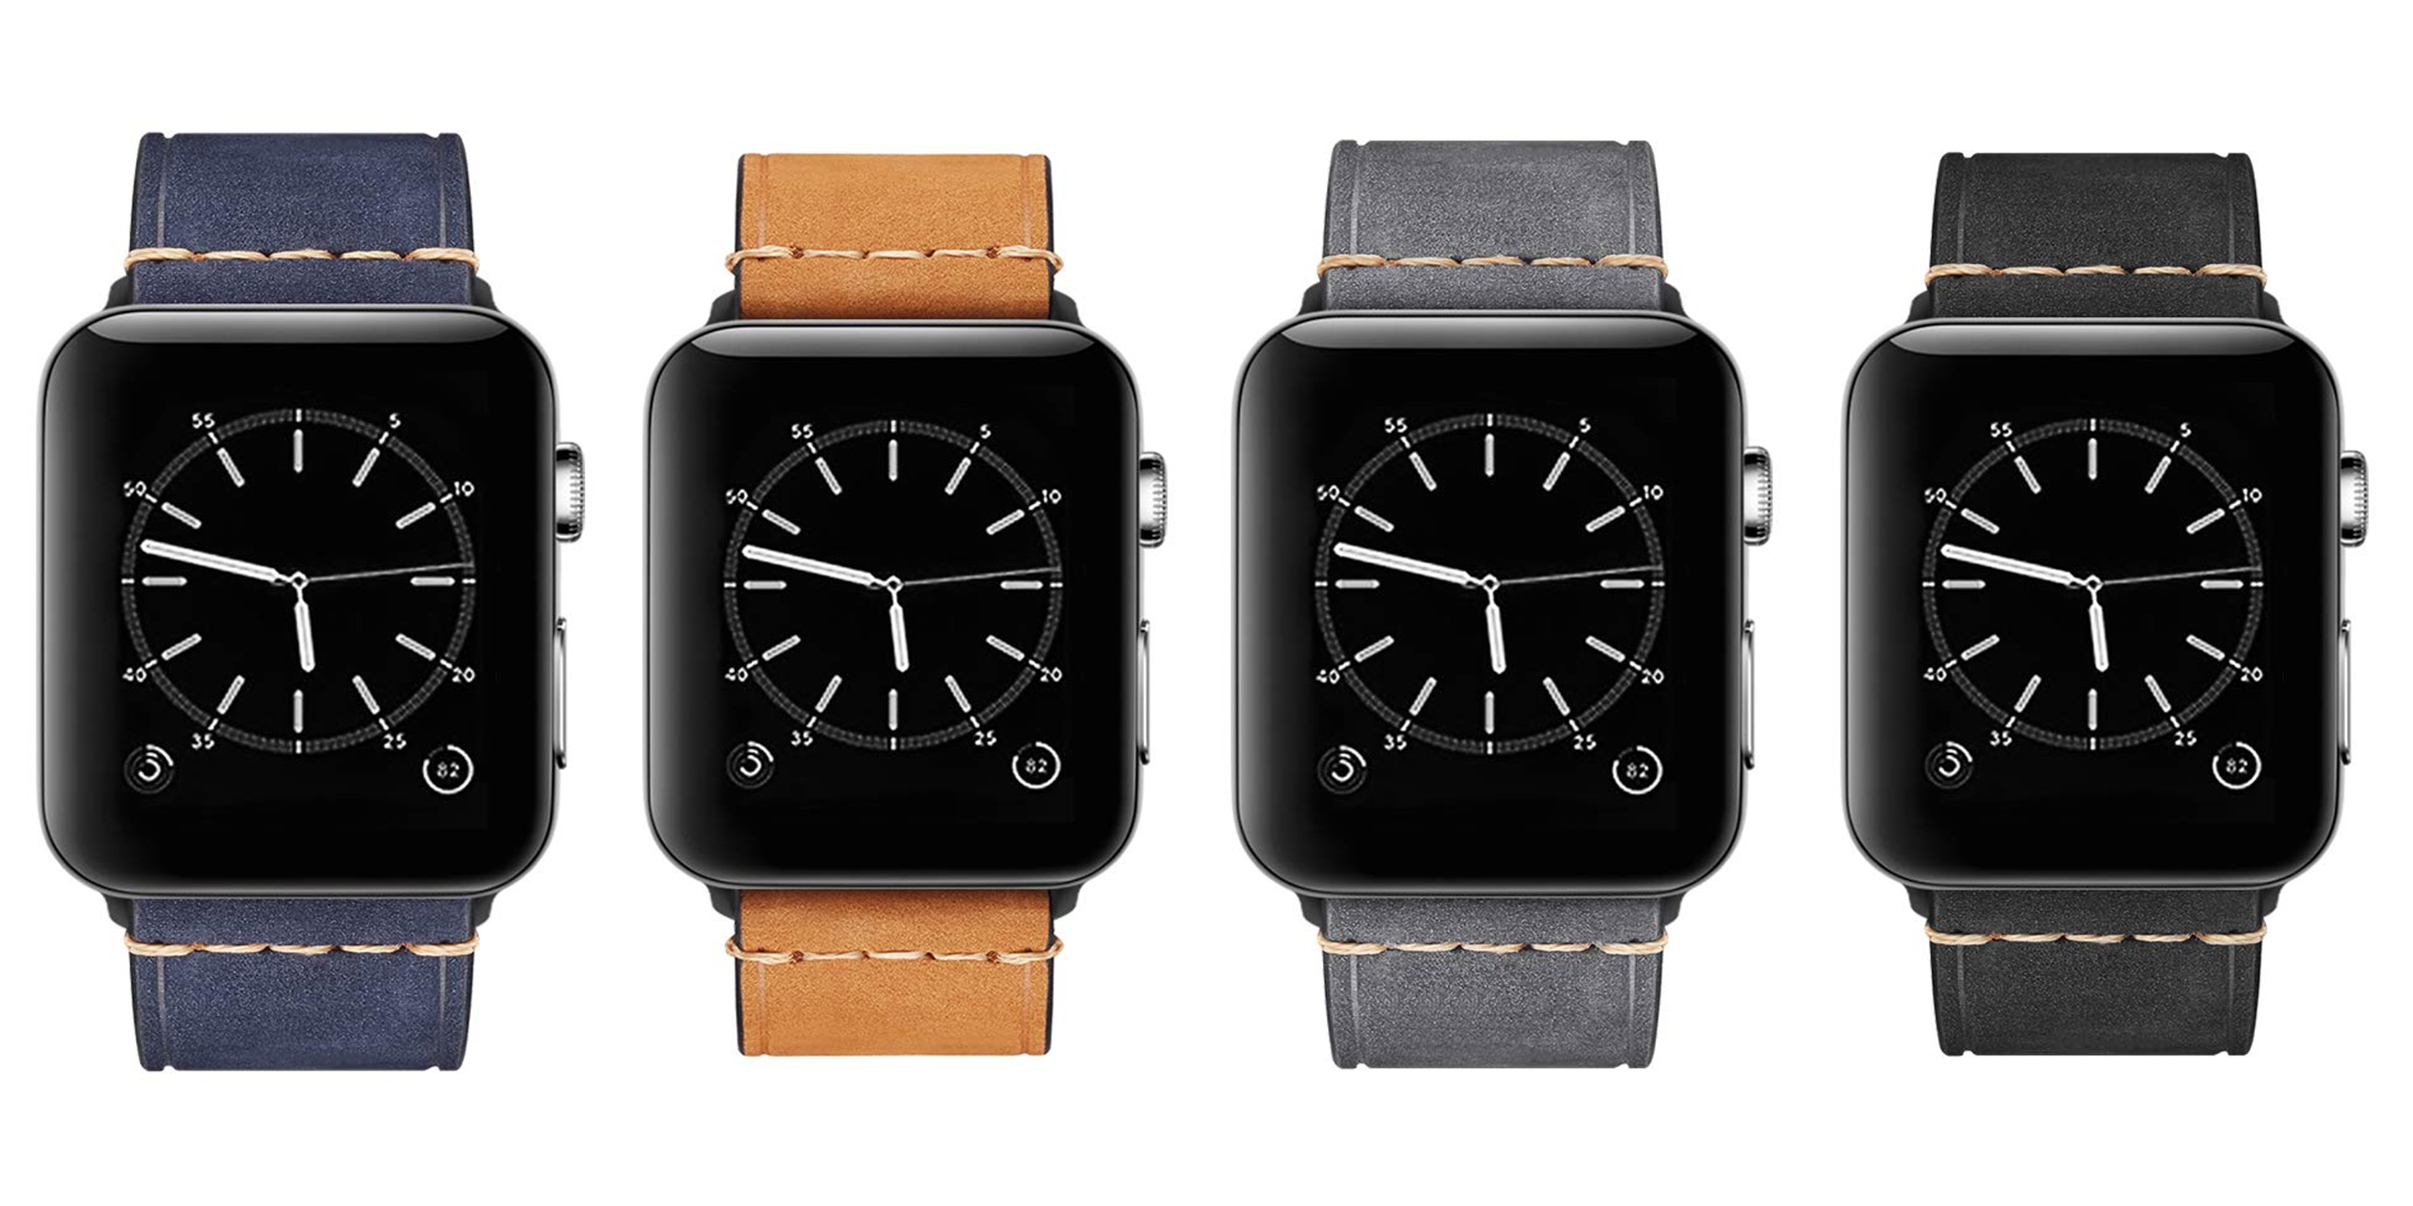 Your choice of four colors highlight this leather Apple Watch band deal at $7